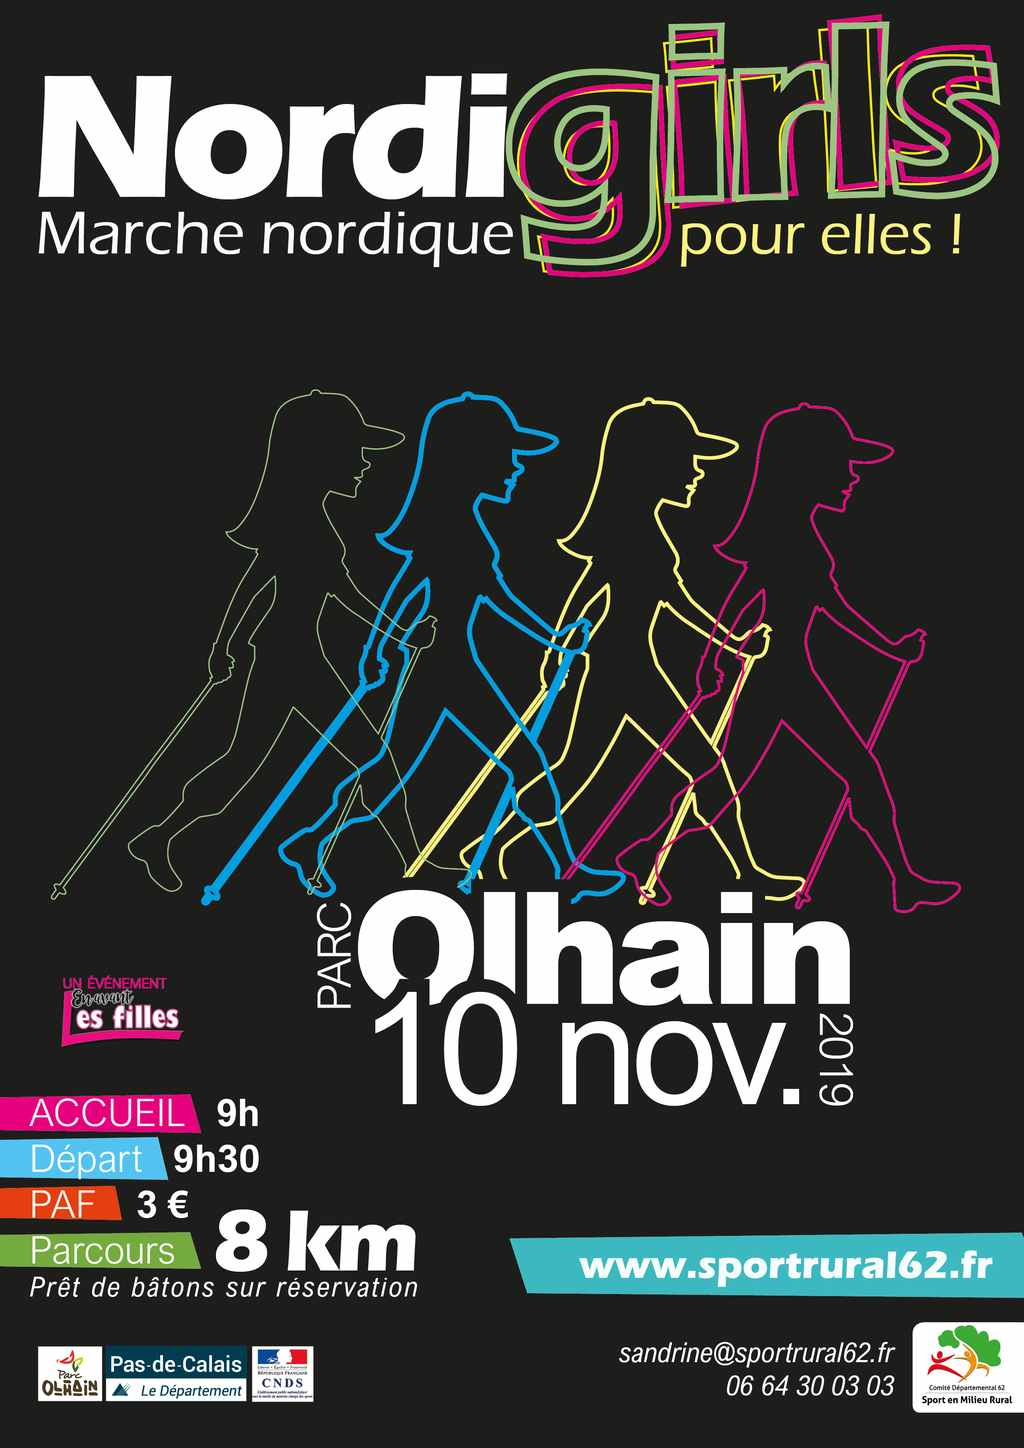 2019-11-10_MN_Nordigirls_affiche(mini)